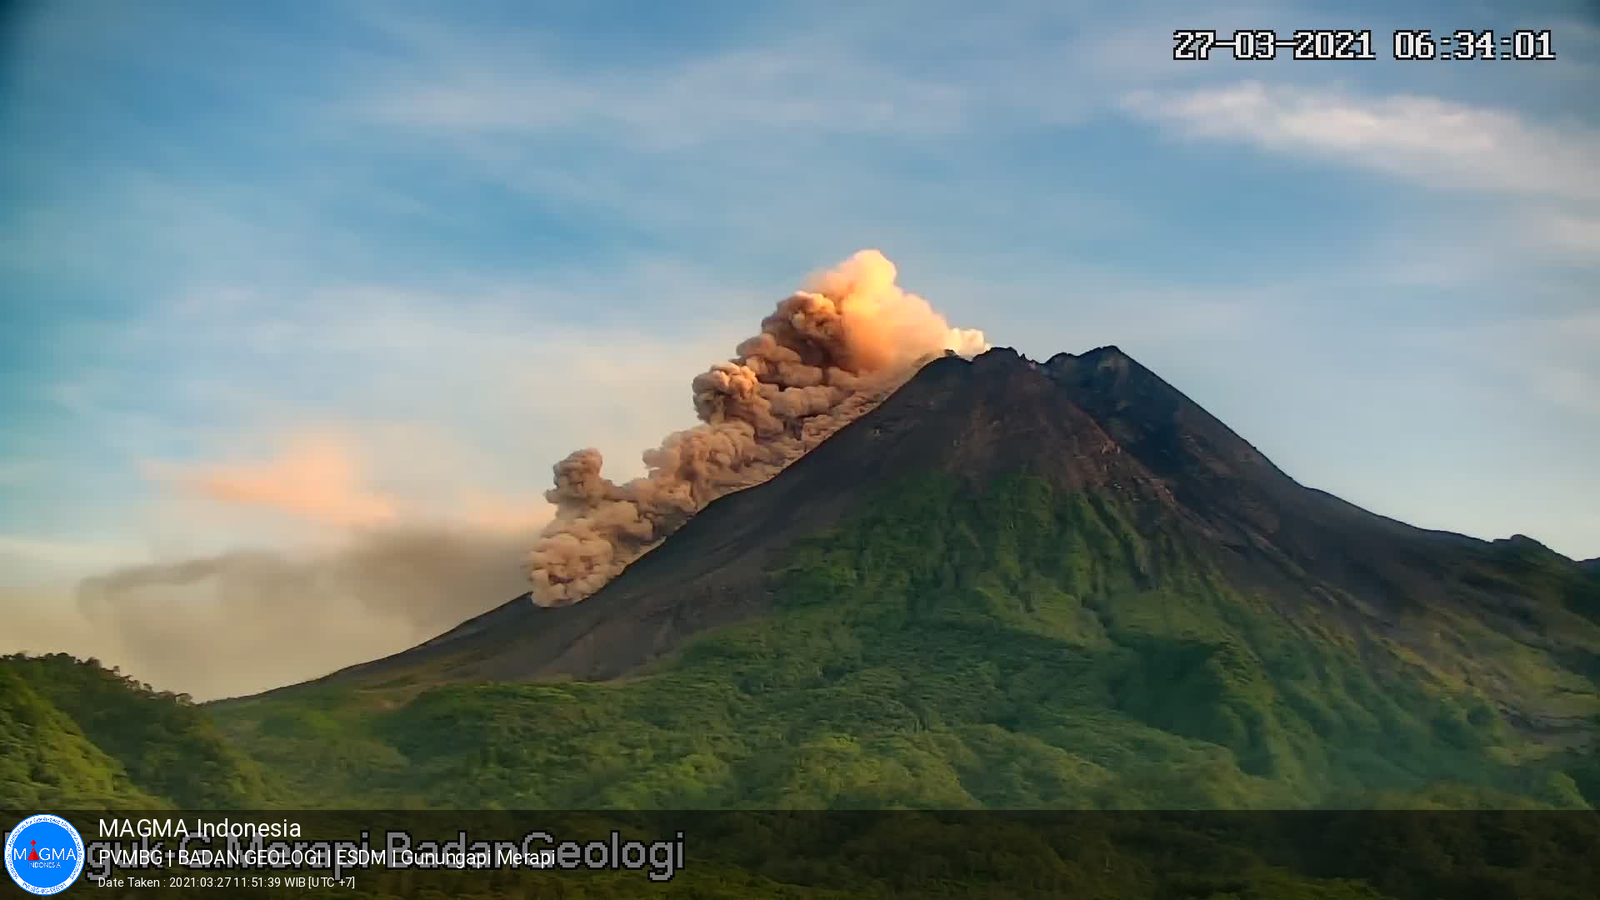 Merapi - pyroclastic flow of collapse on 03/27/2021 / 6:34 a.m. - photo PVMBG / Magma Indonesia